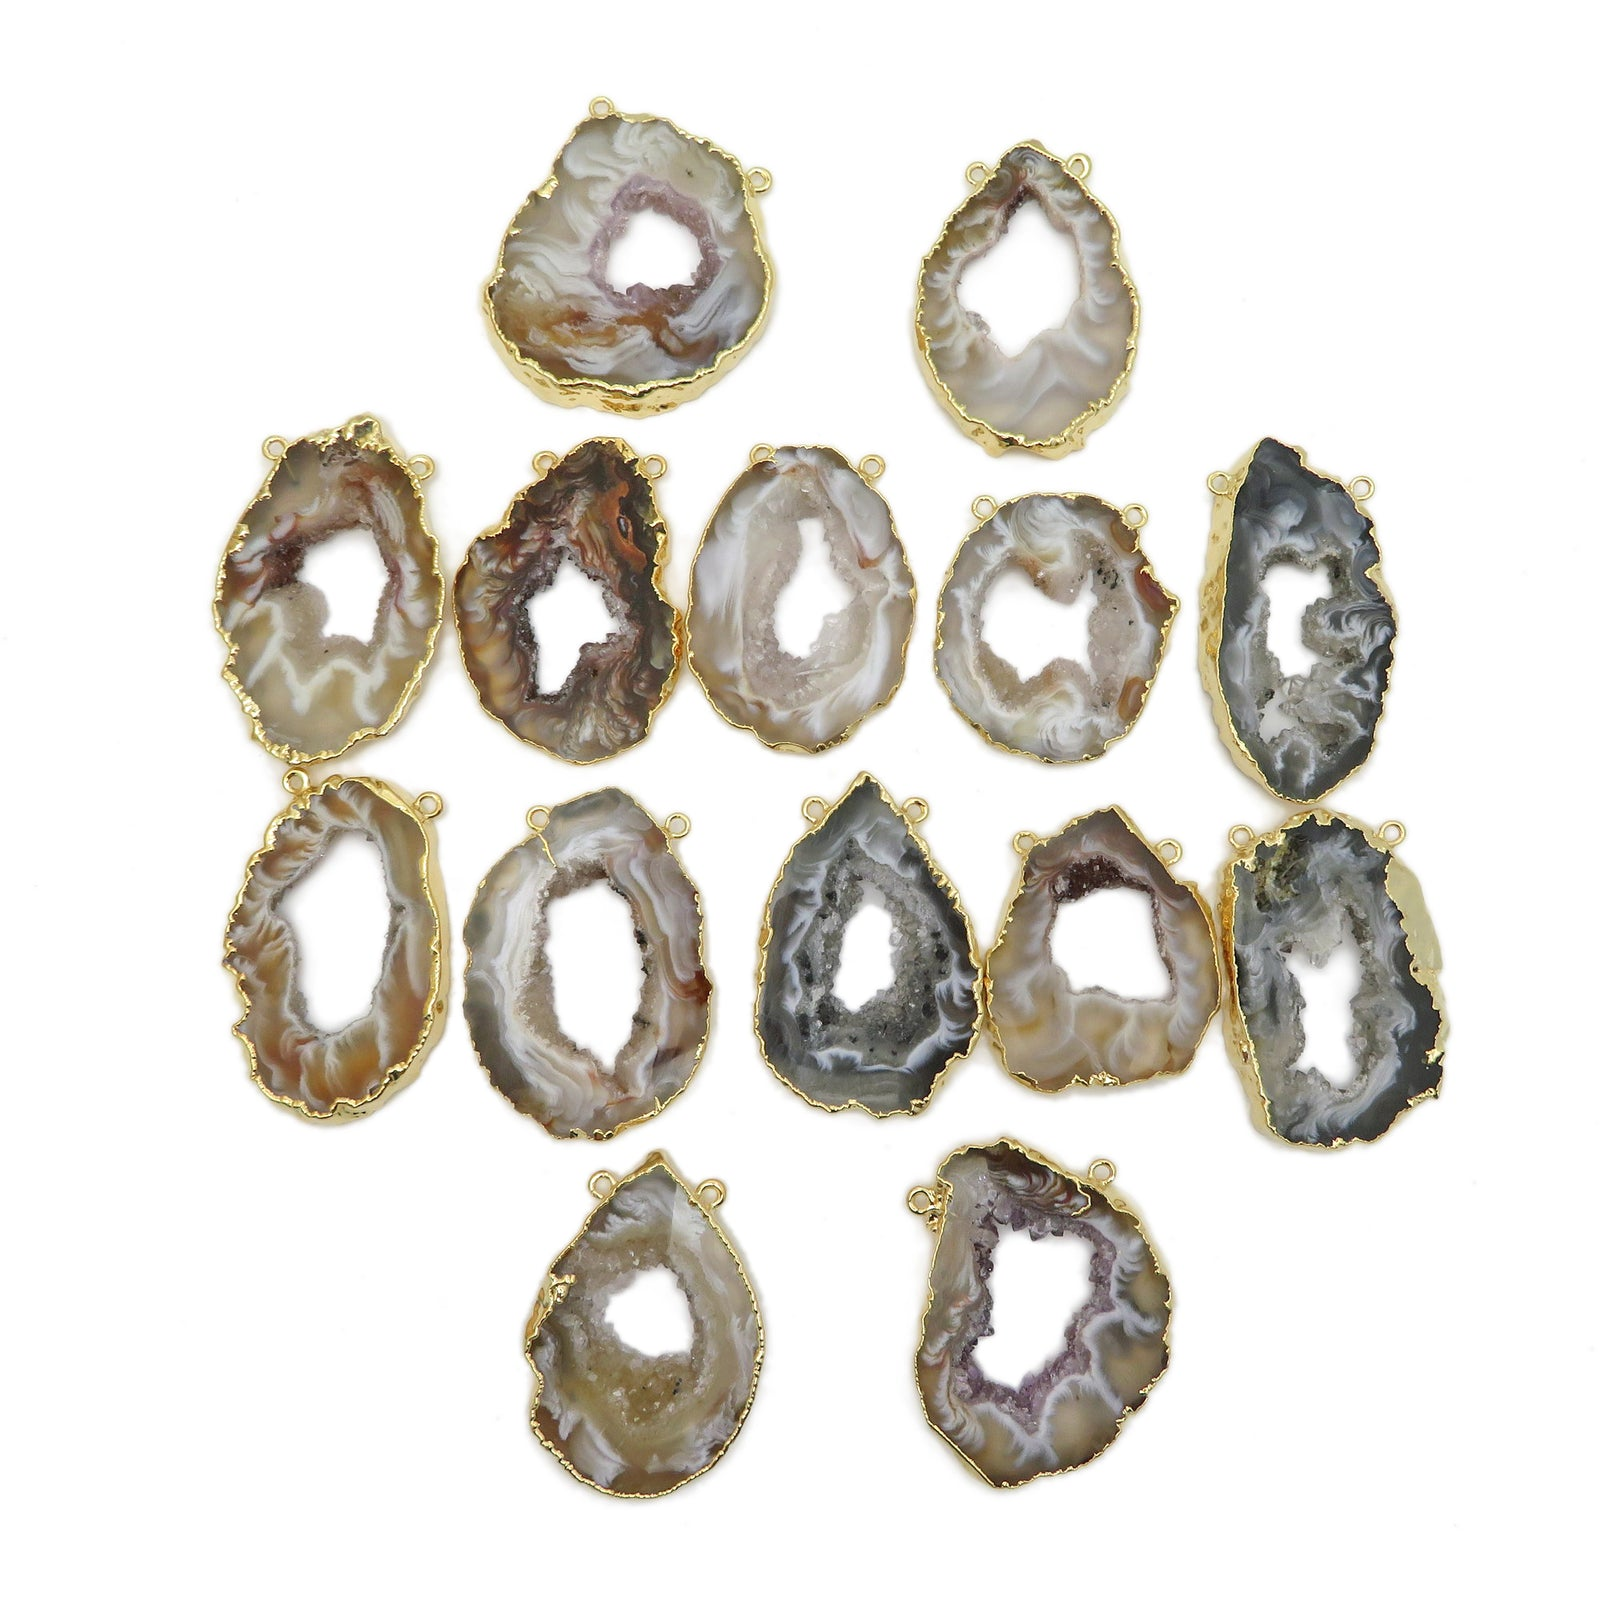 Geode Slice Pendant Double Bail Gold Electroplated (S25B32)